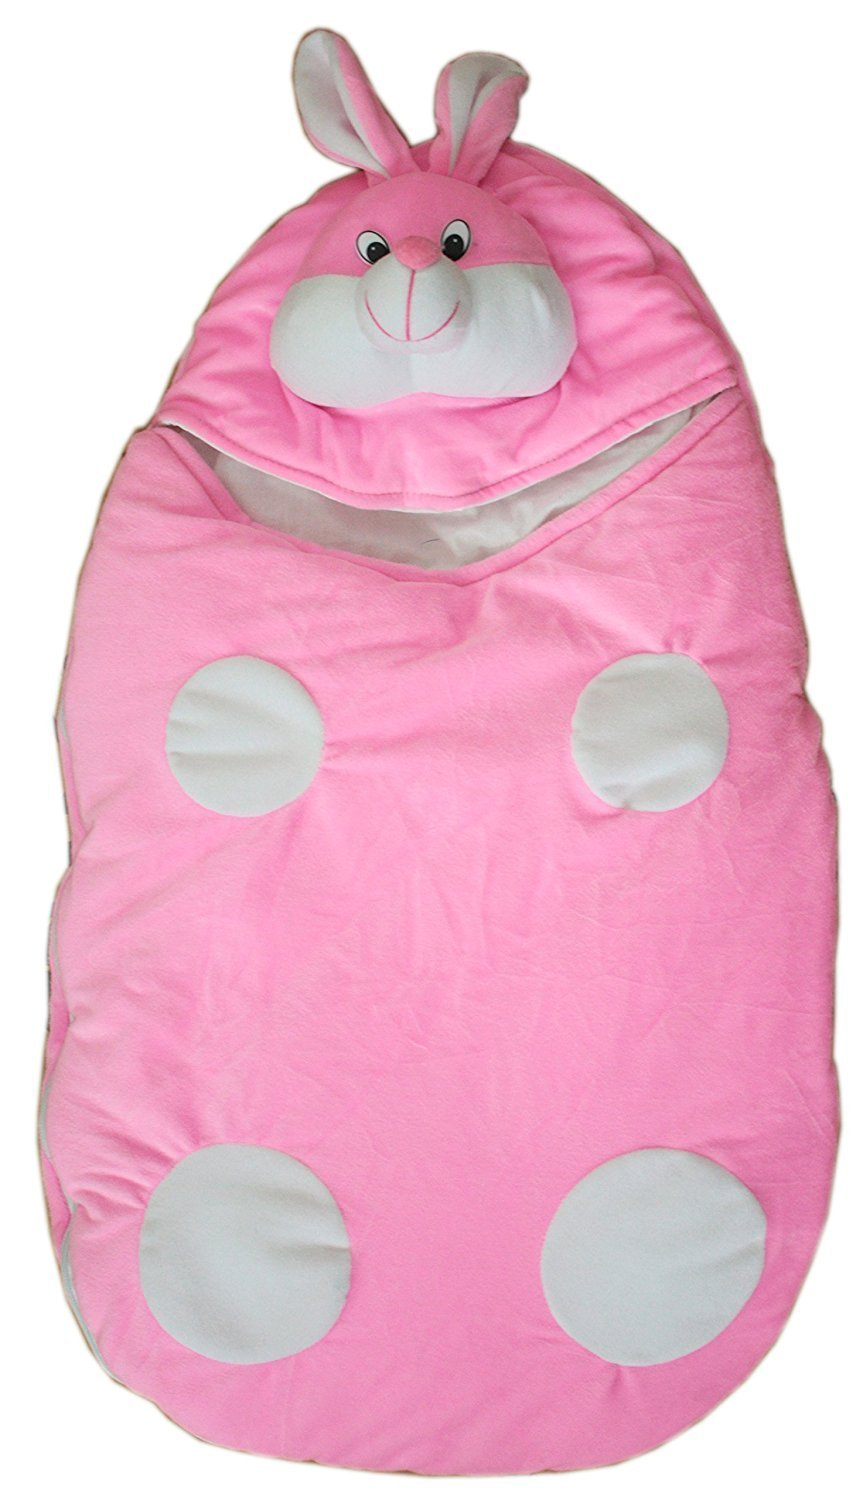 Gomani Baby Sleeping Bag Pink Rabbit